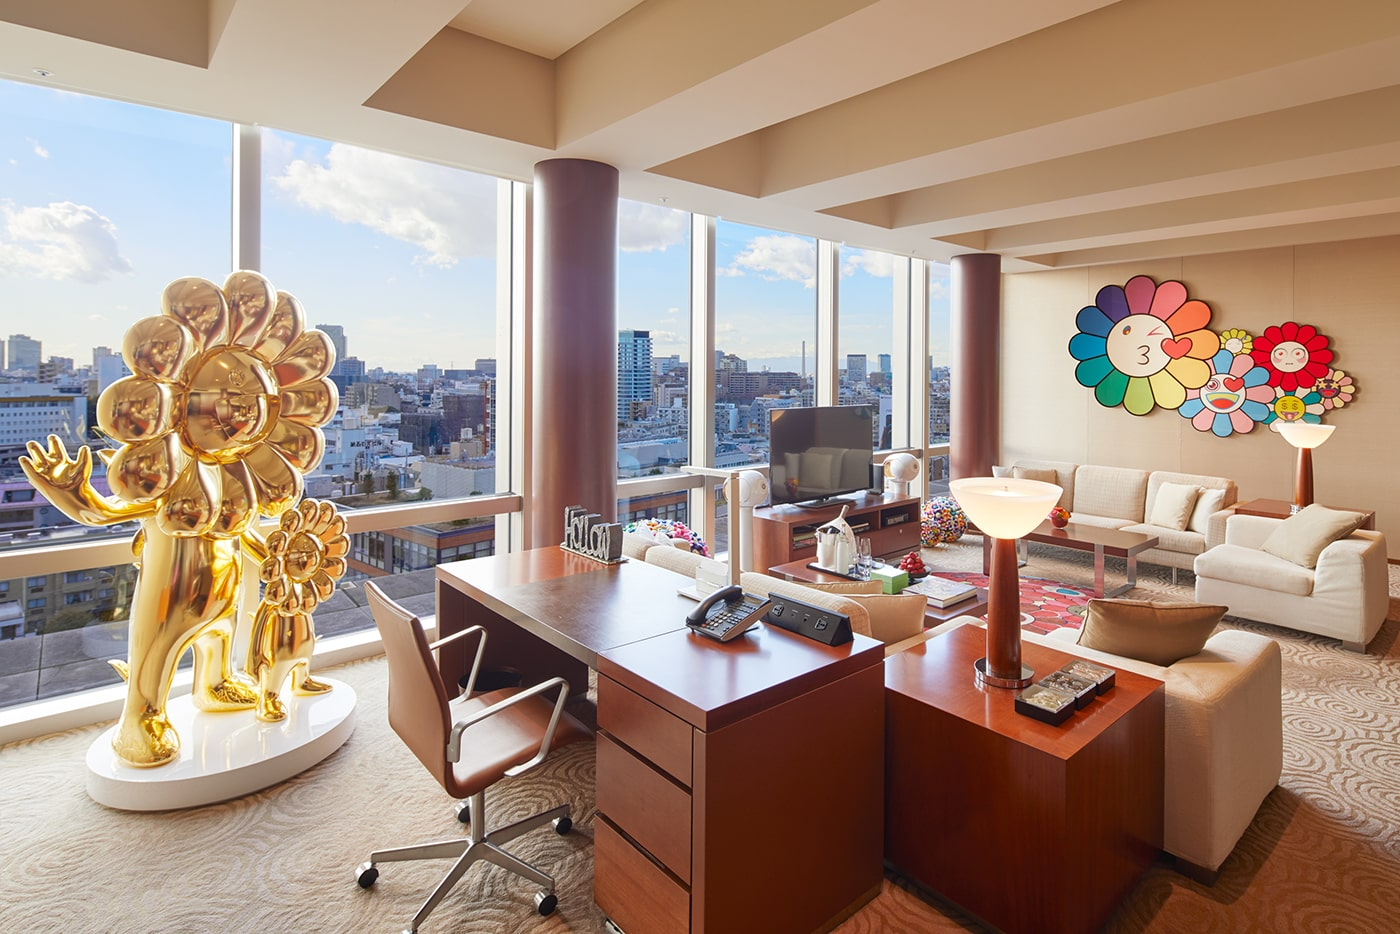 The World's First Takashi Murakami-Designed Hotel Room Is Now Available At Grand Hyatt Tokyo